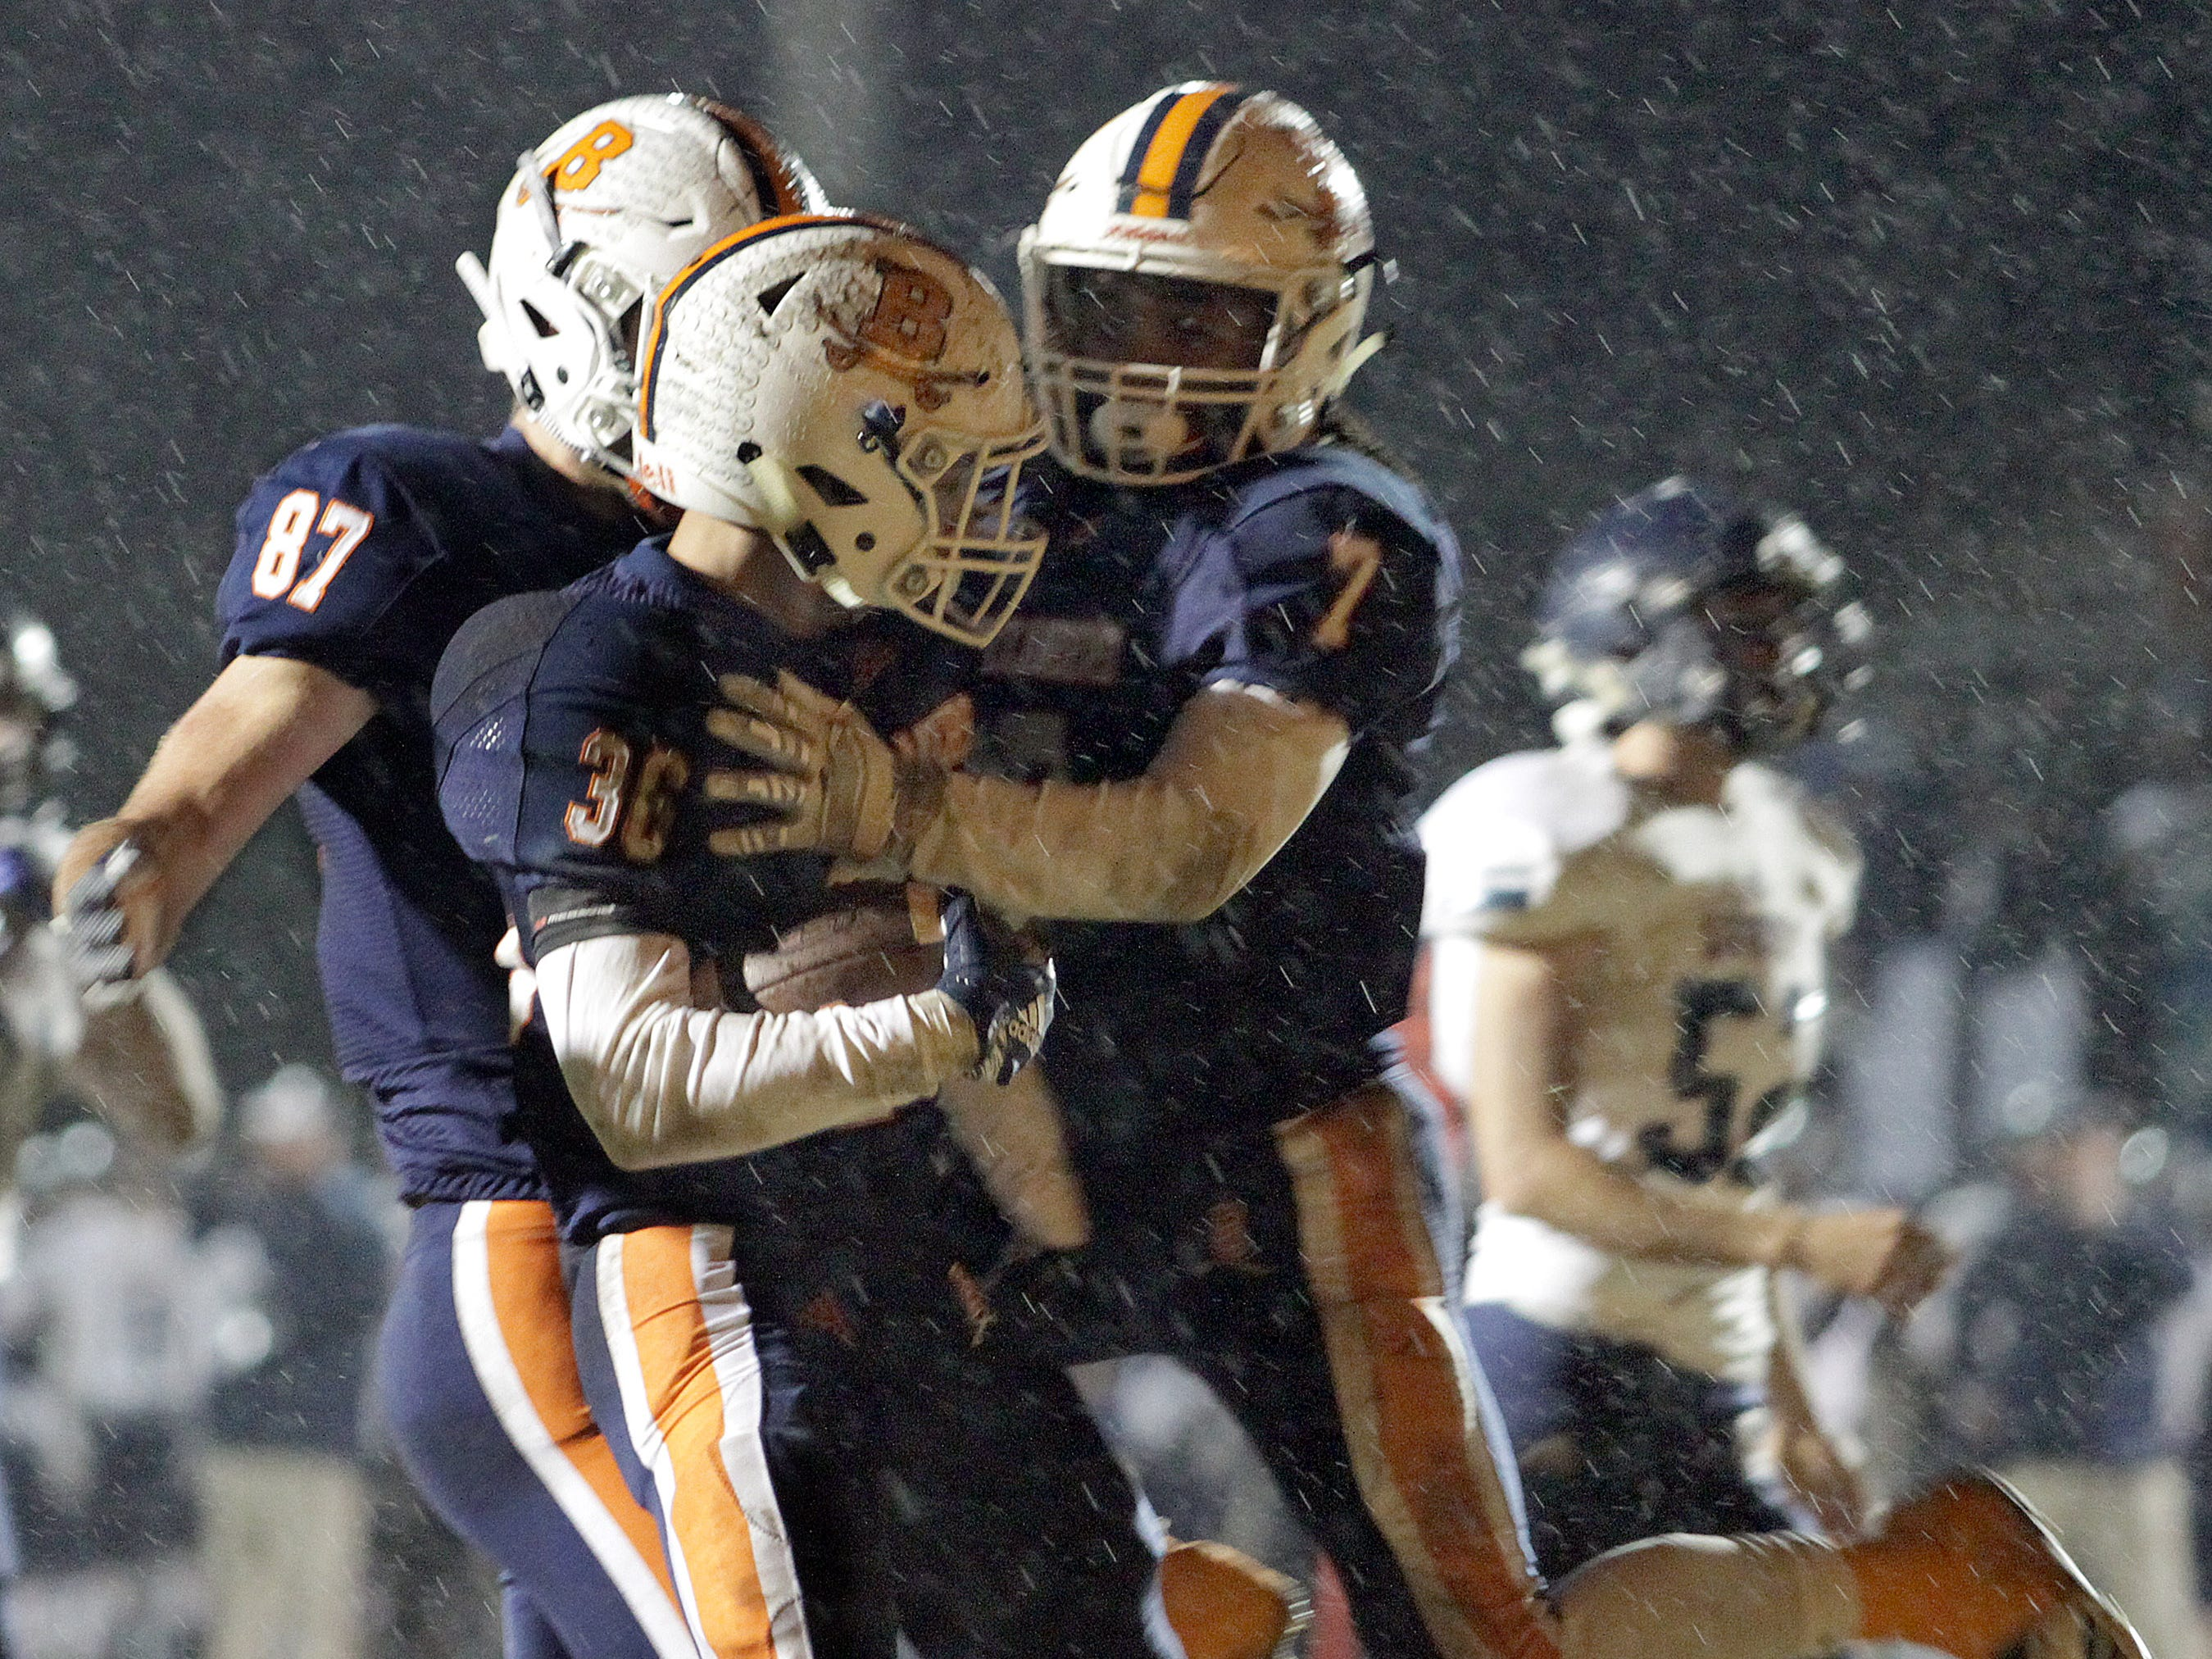 Beech's Aaron foxx is greeted after scoring a TD against Beech by Davis Ward and Ja' Sean Parks on Friday, November 2, 2018.